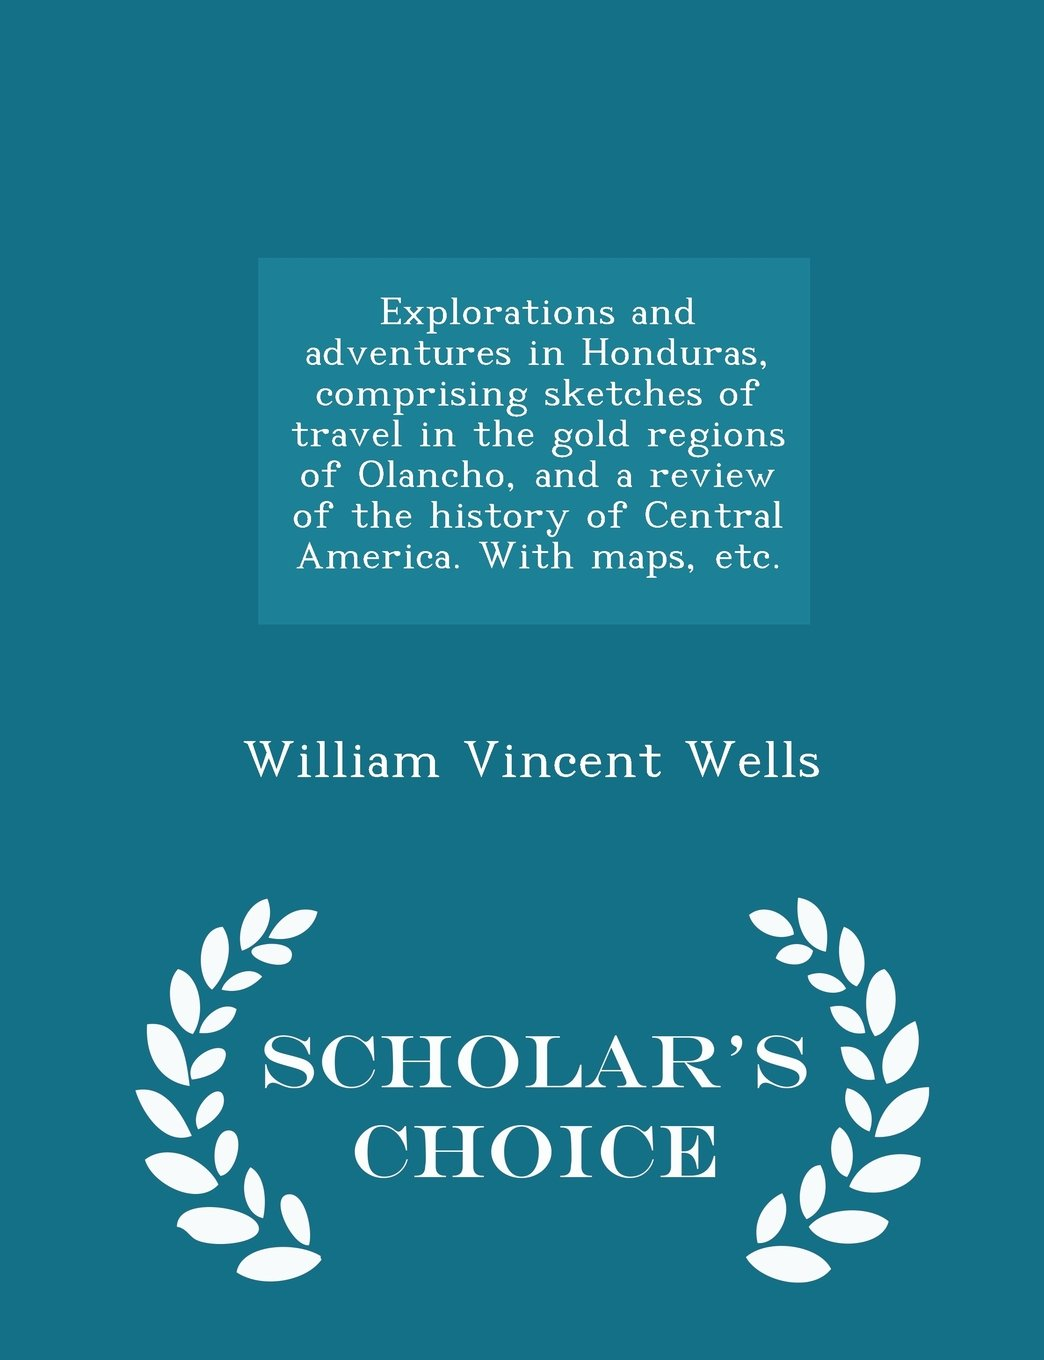 Download Explorations and adventures in Honduras, comprising sketches of travel in the gold regions of Olancho, and a review of the history of Central America. With maps, etc. - Scholar's Choice Edition PDF